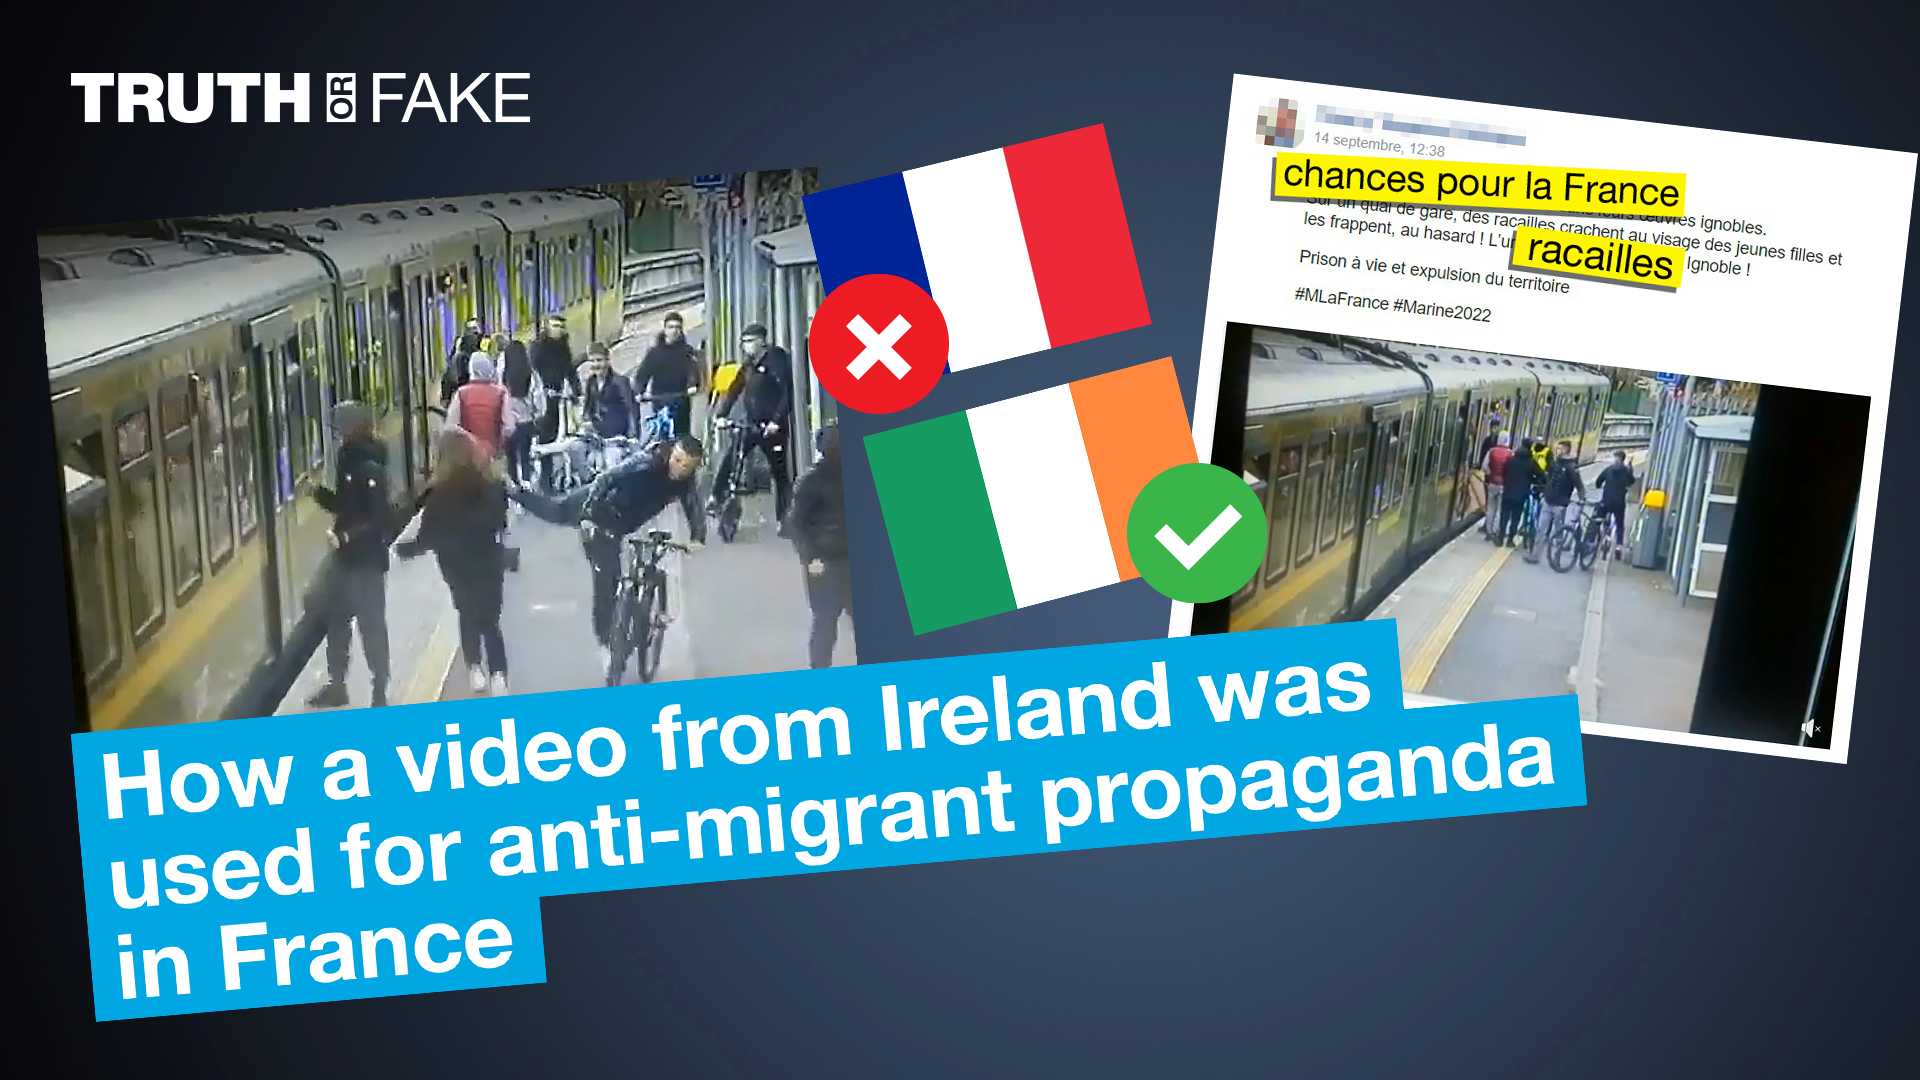 The French far-right politician Thierry Tsagalos shared a video of what he implied was migrants attacking women in France. But the video actually comes from Ireland and shows an assault by Irish people.